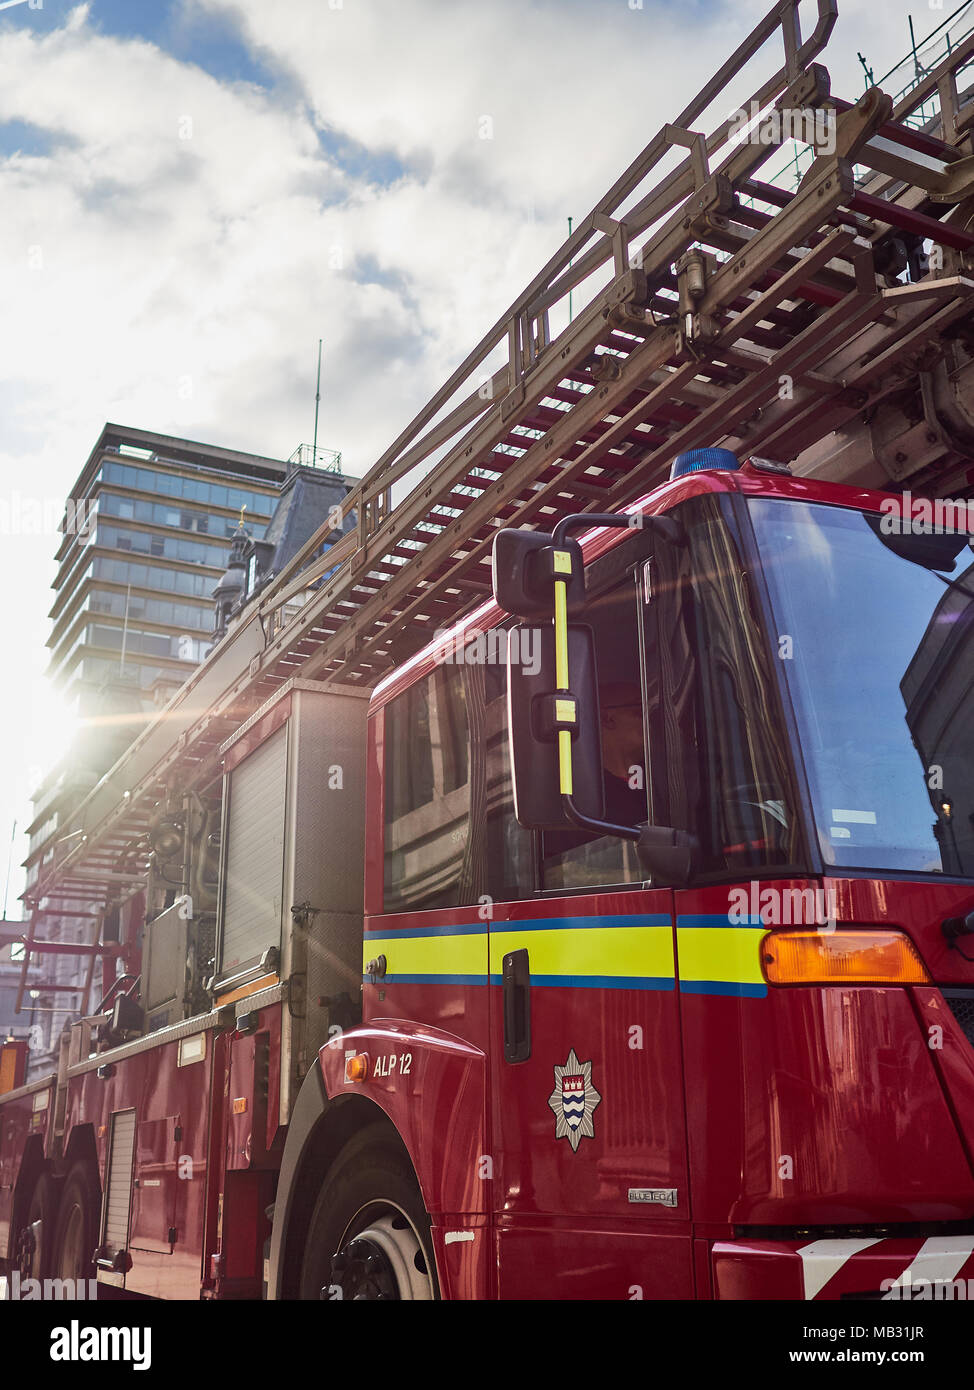 London Fire Brigade fire engine appliance pictured in bright sunshine against blue skies with sun flare across image. - Stock Image